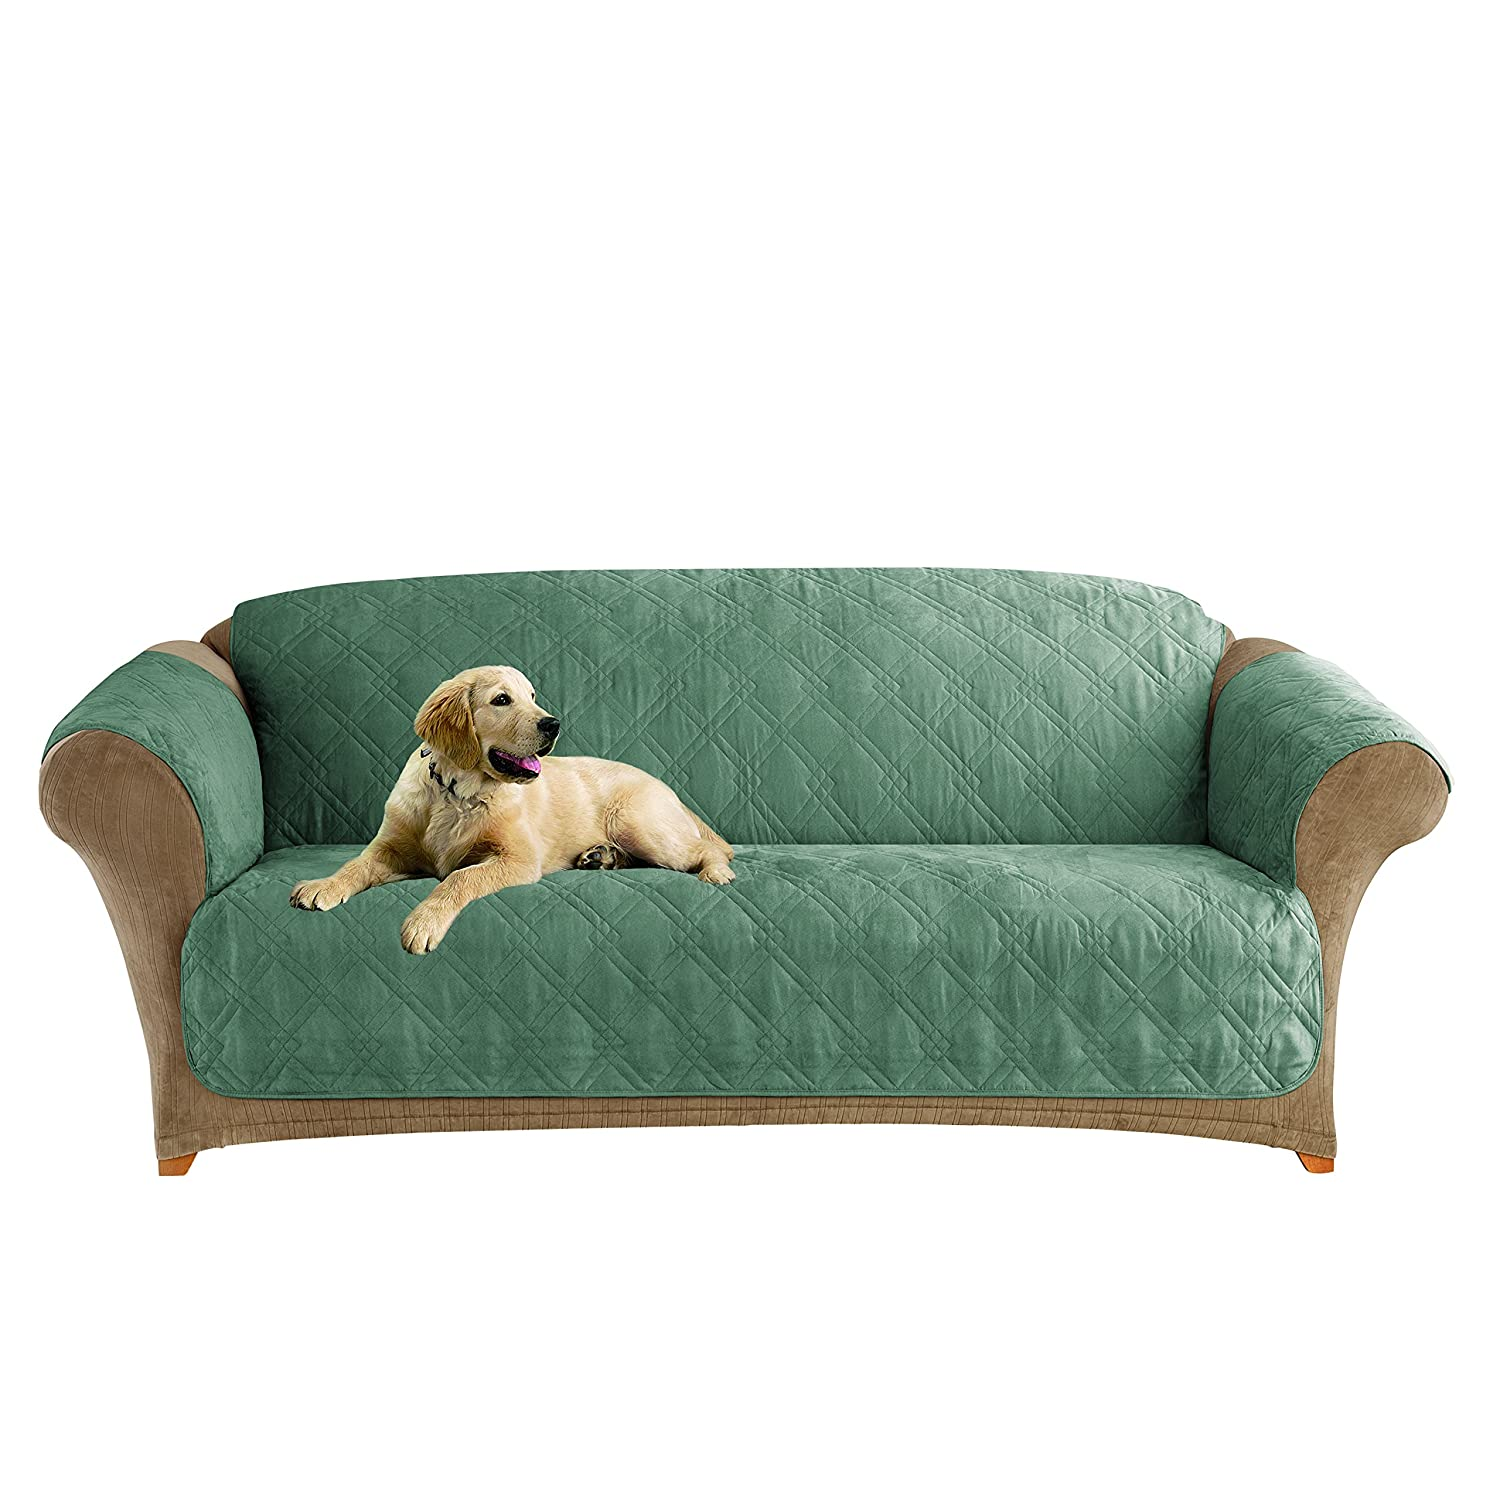 Amazon Sure Fit Microfiber Pet Sofa Slipcover Sea Glass